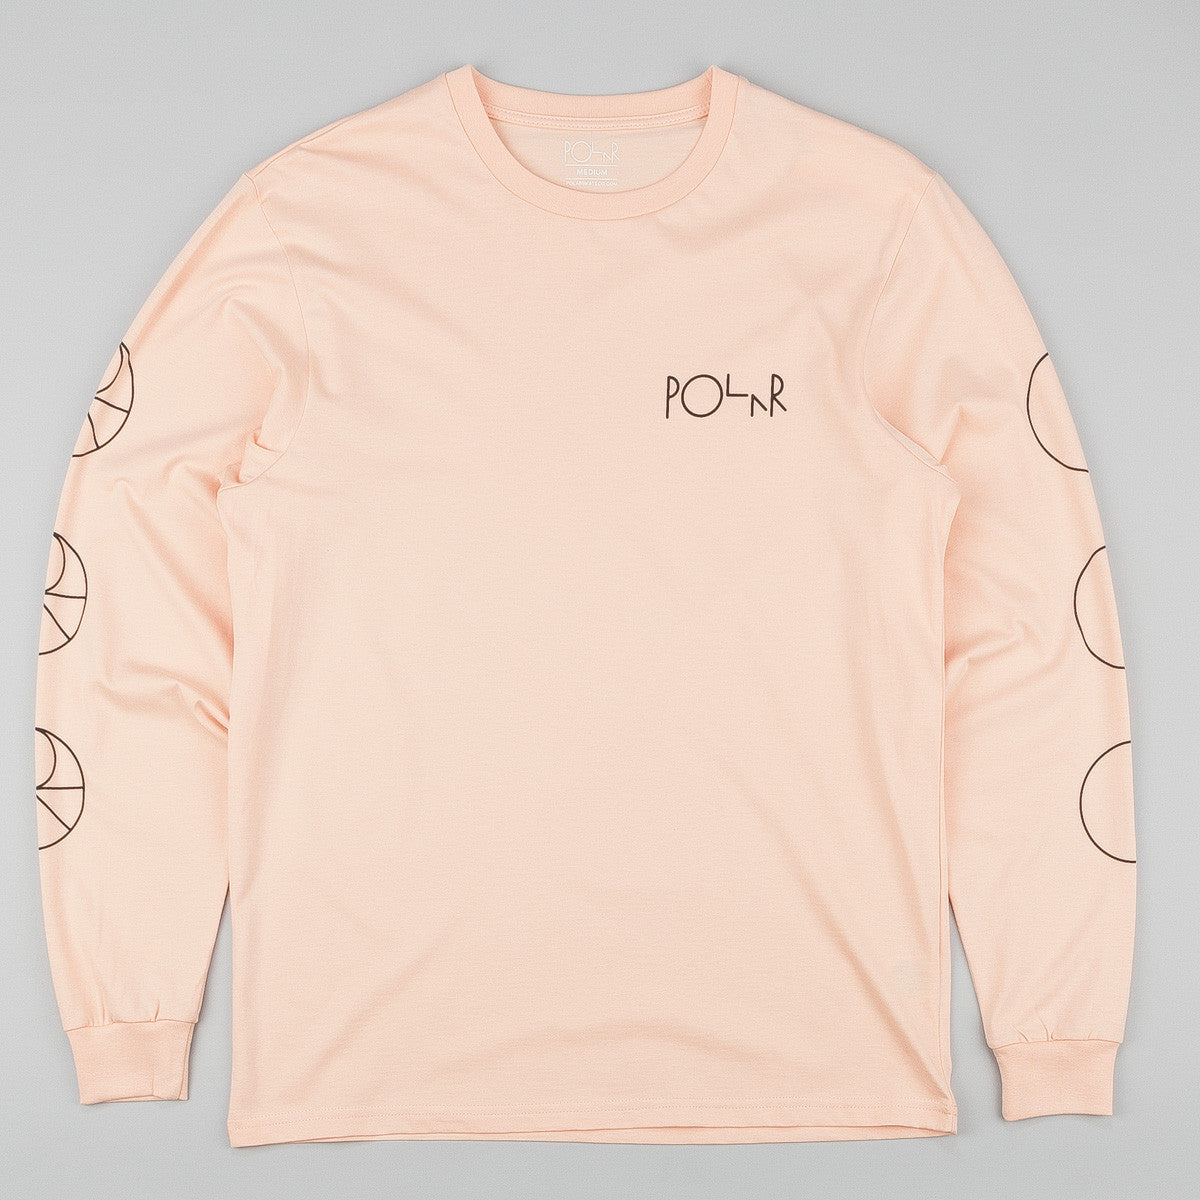 Polar Racing Longsleeve T-Shirt